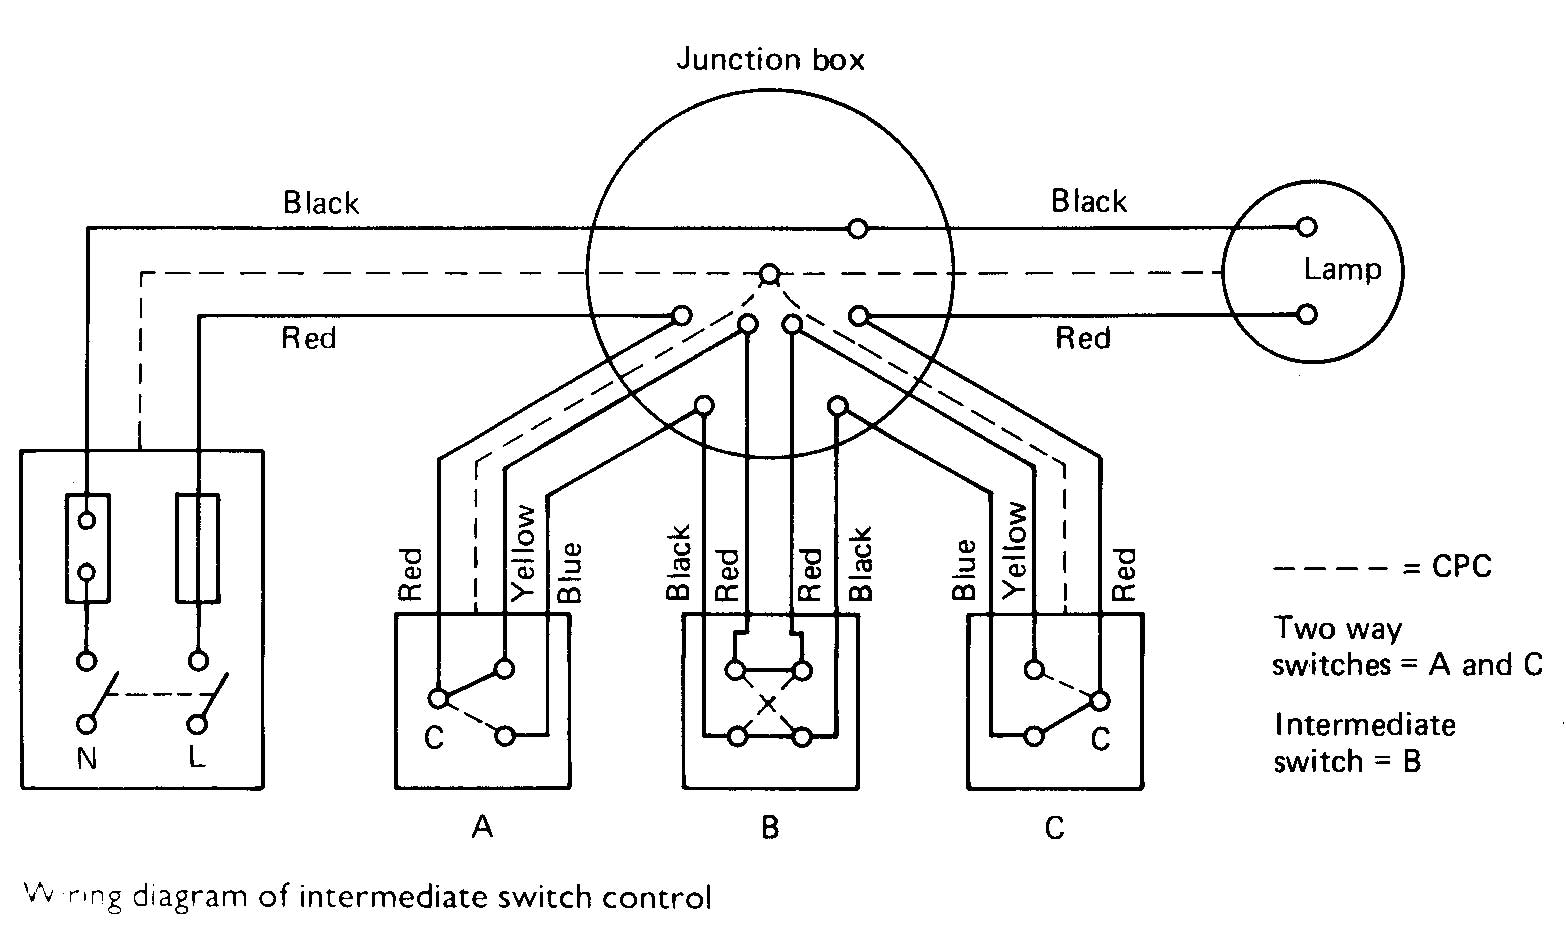 2 Way Lighting Circuit Wiring Diagram Nz